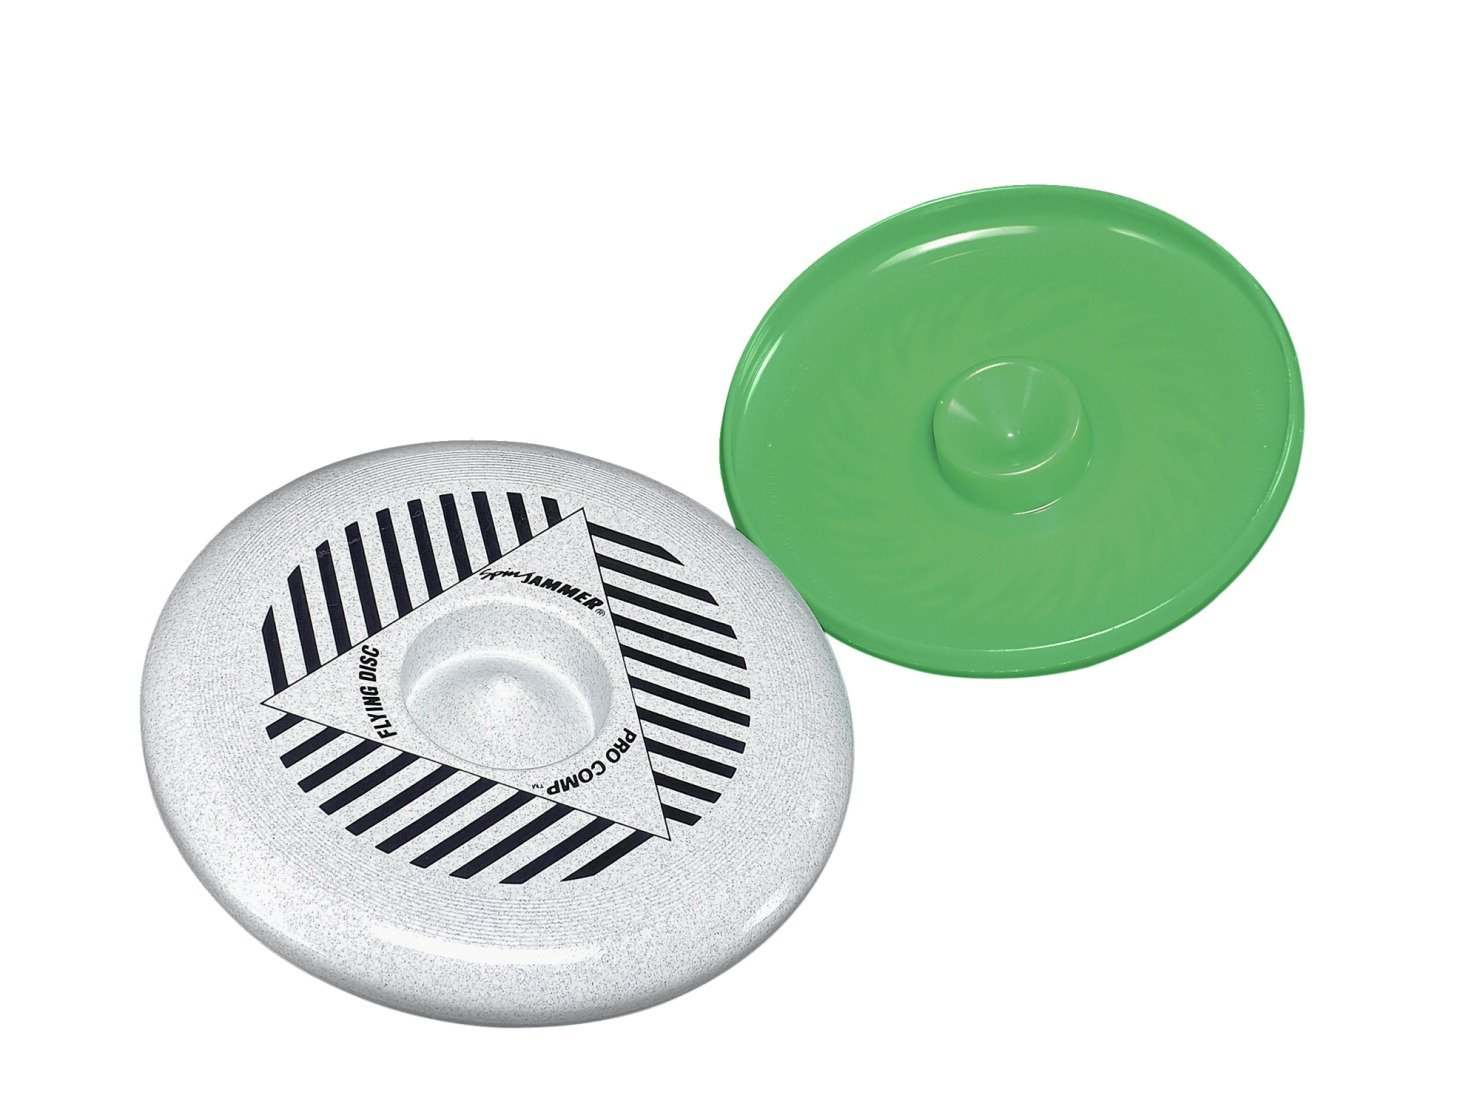 Spin Jammer Flying Discs, 9 Inches, Set of 15 by Spin Jammer